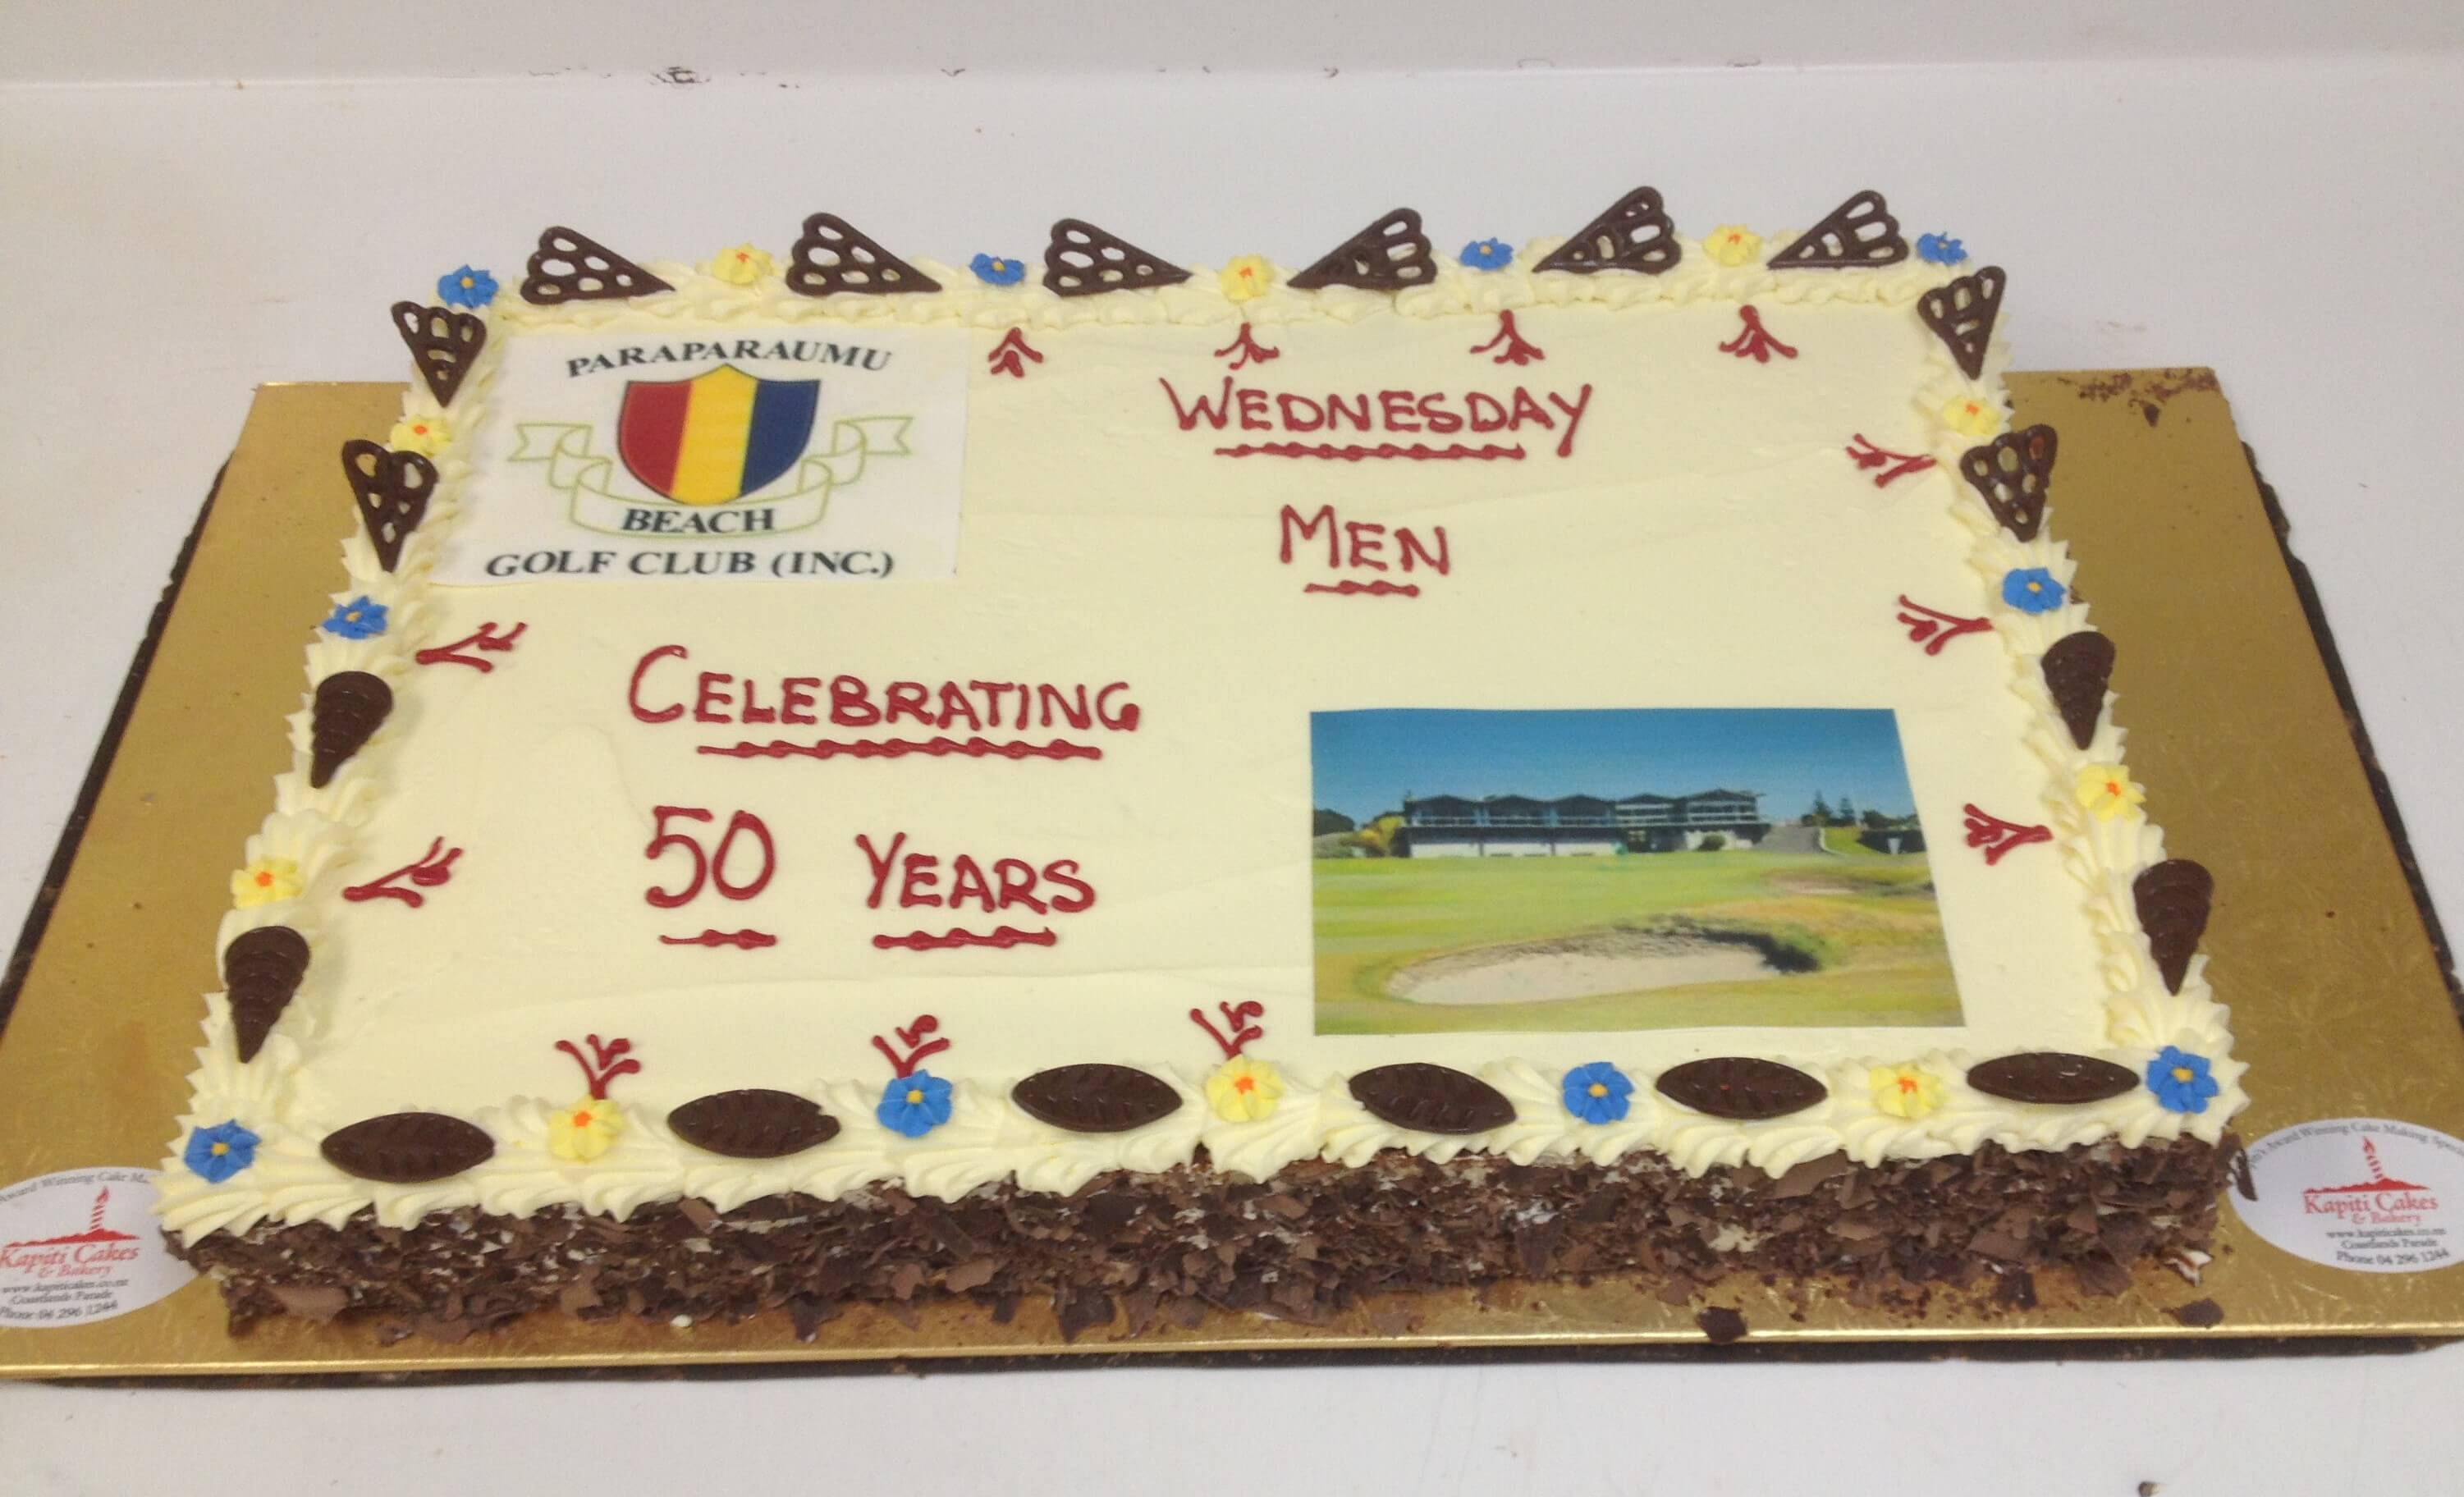 Paraparaumu beach golf club inc celebrations cake